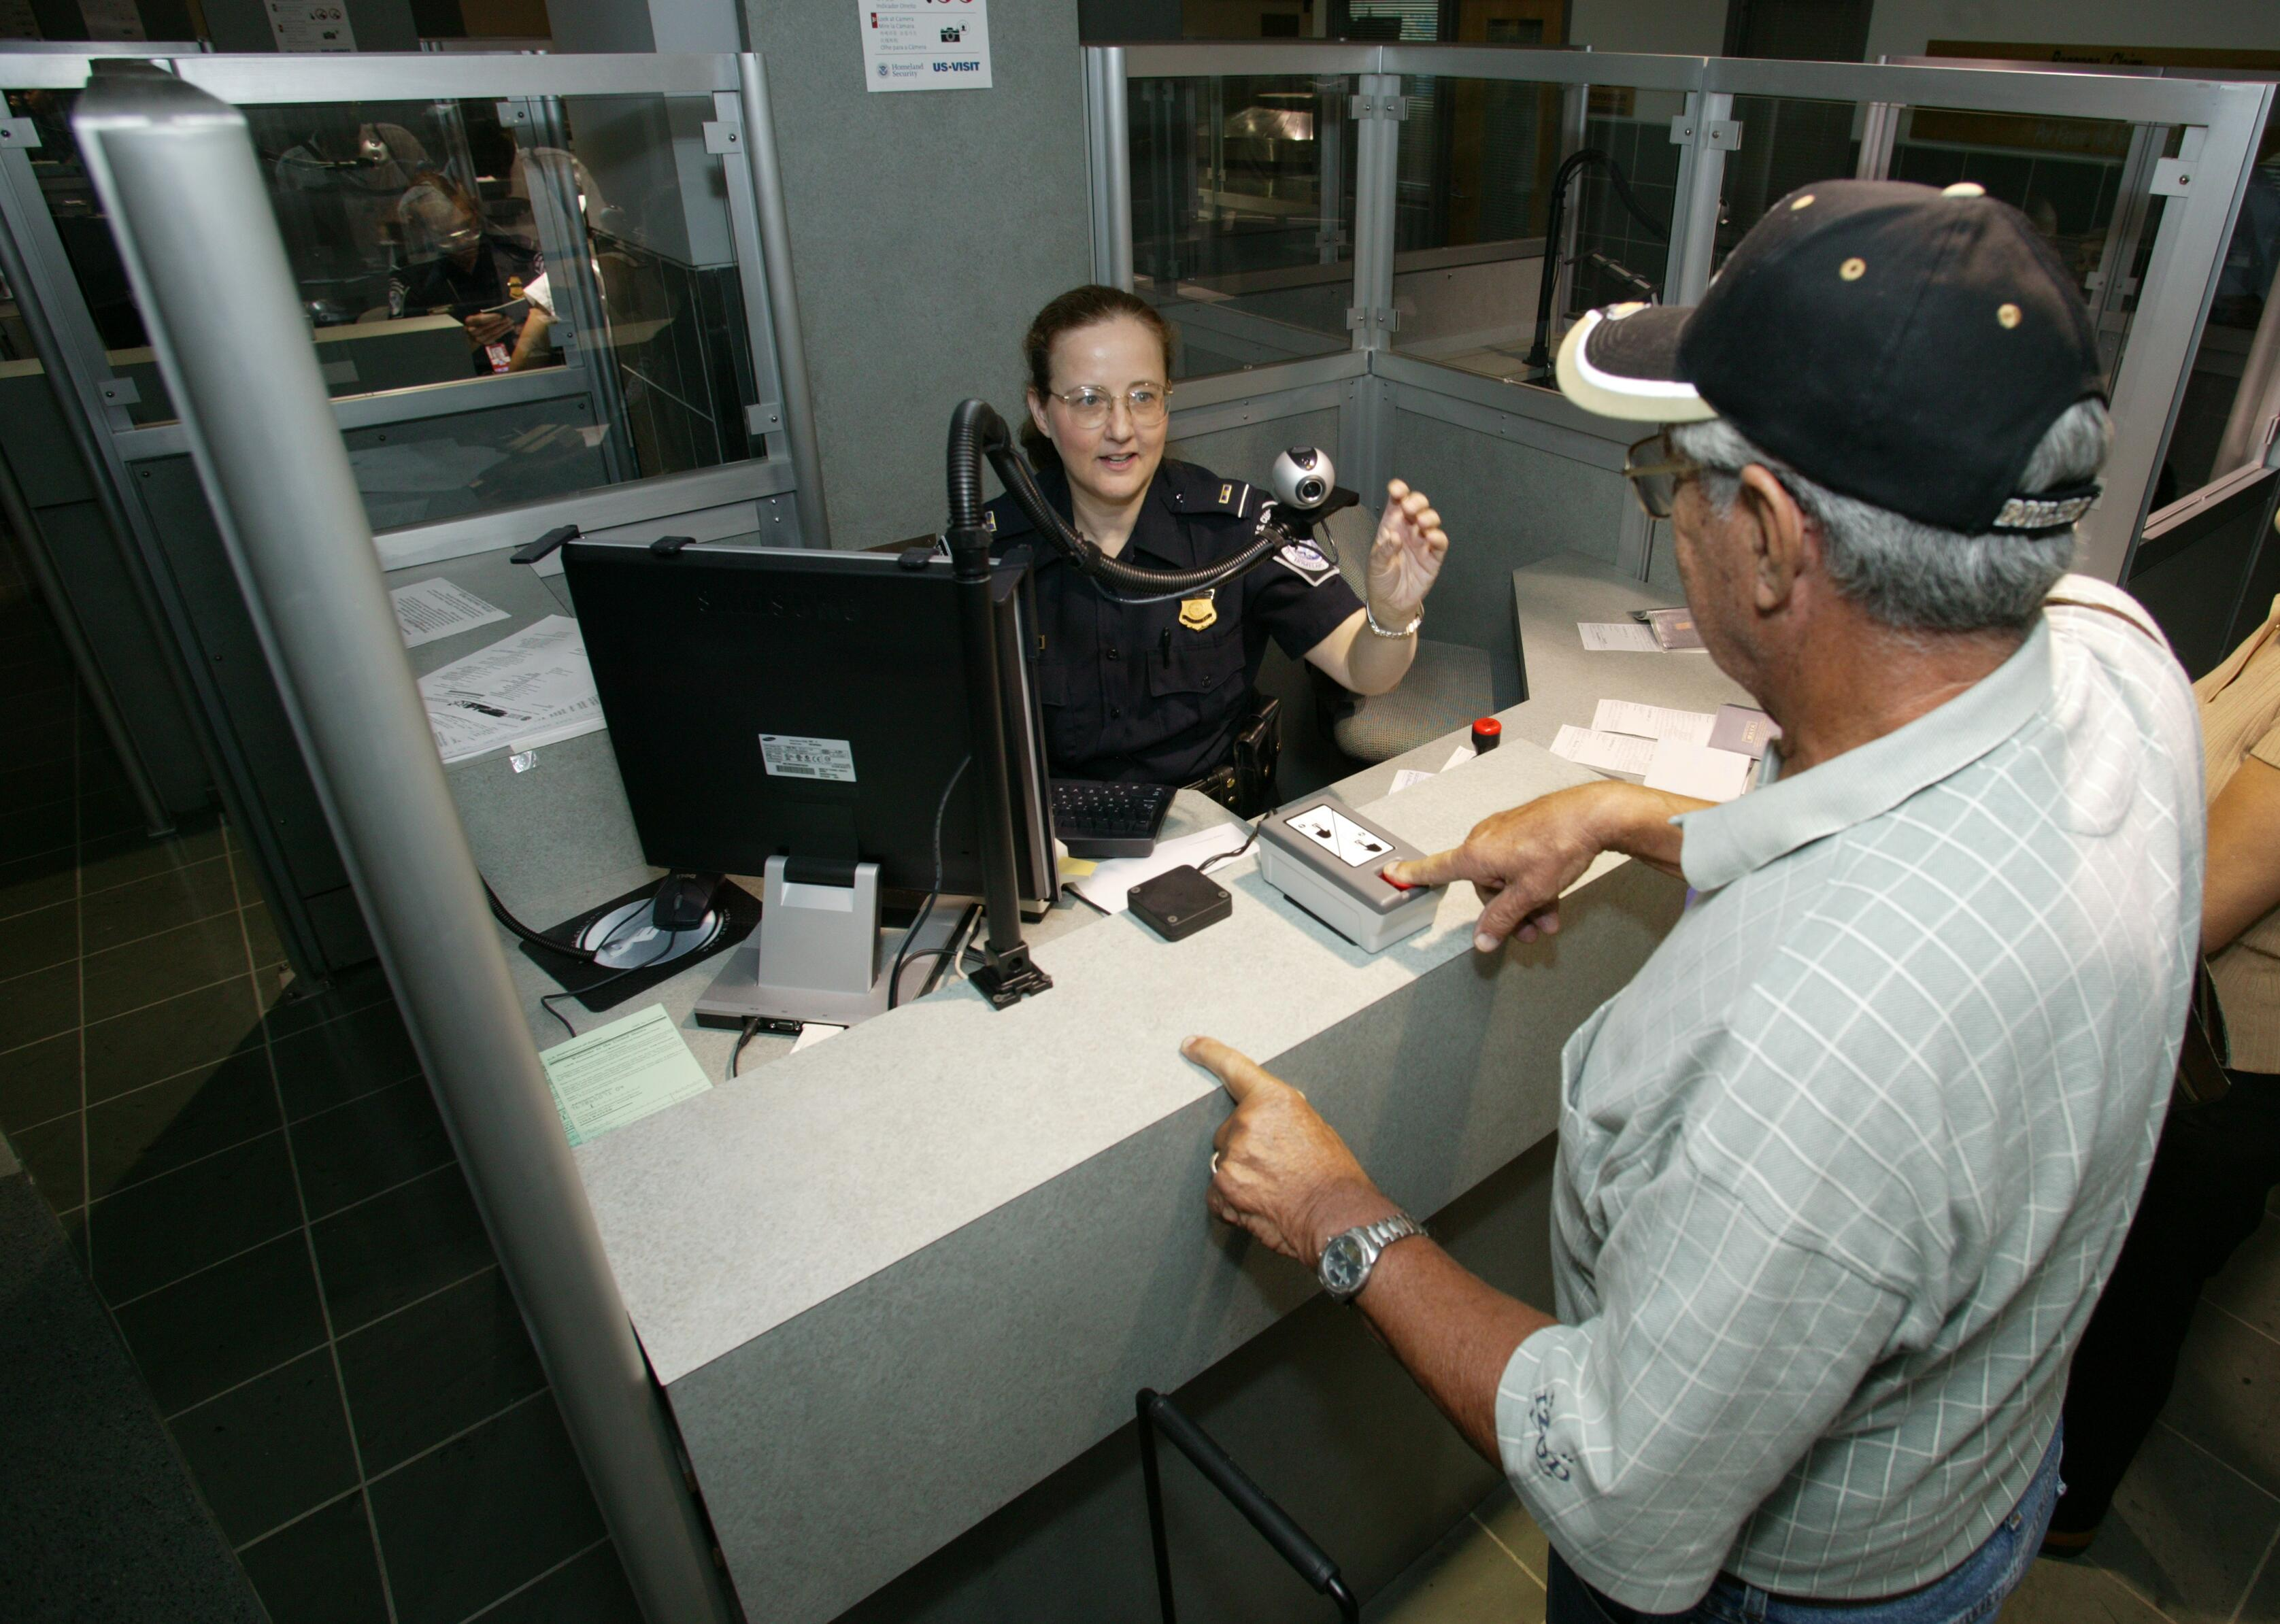 A CBP Officer uses new technologies to process passengers.